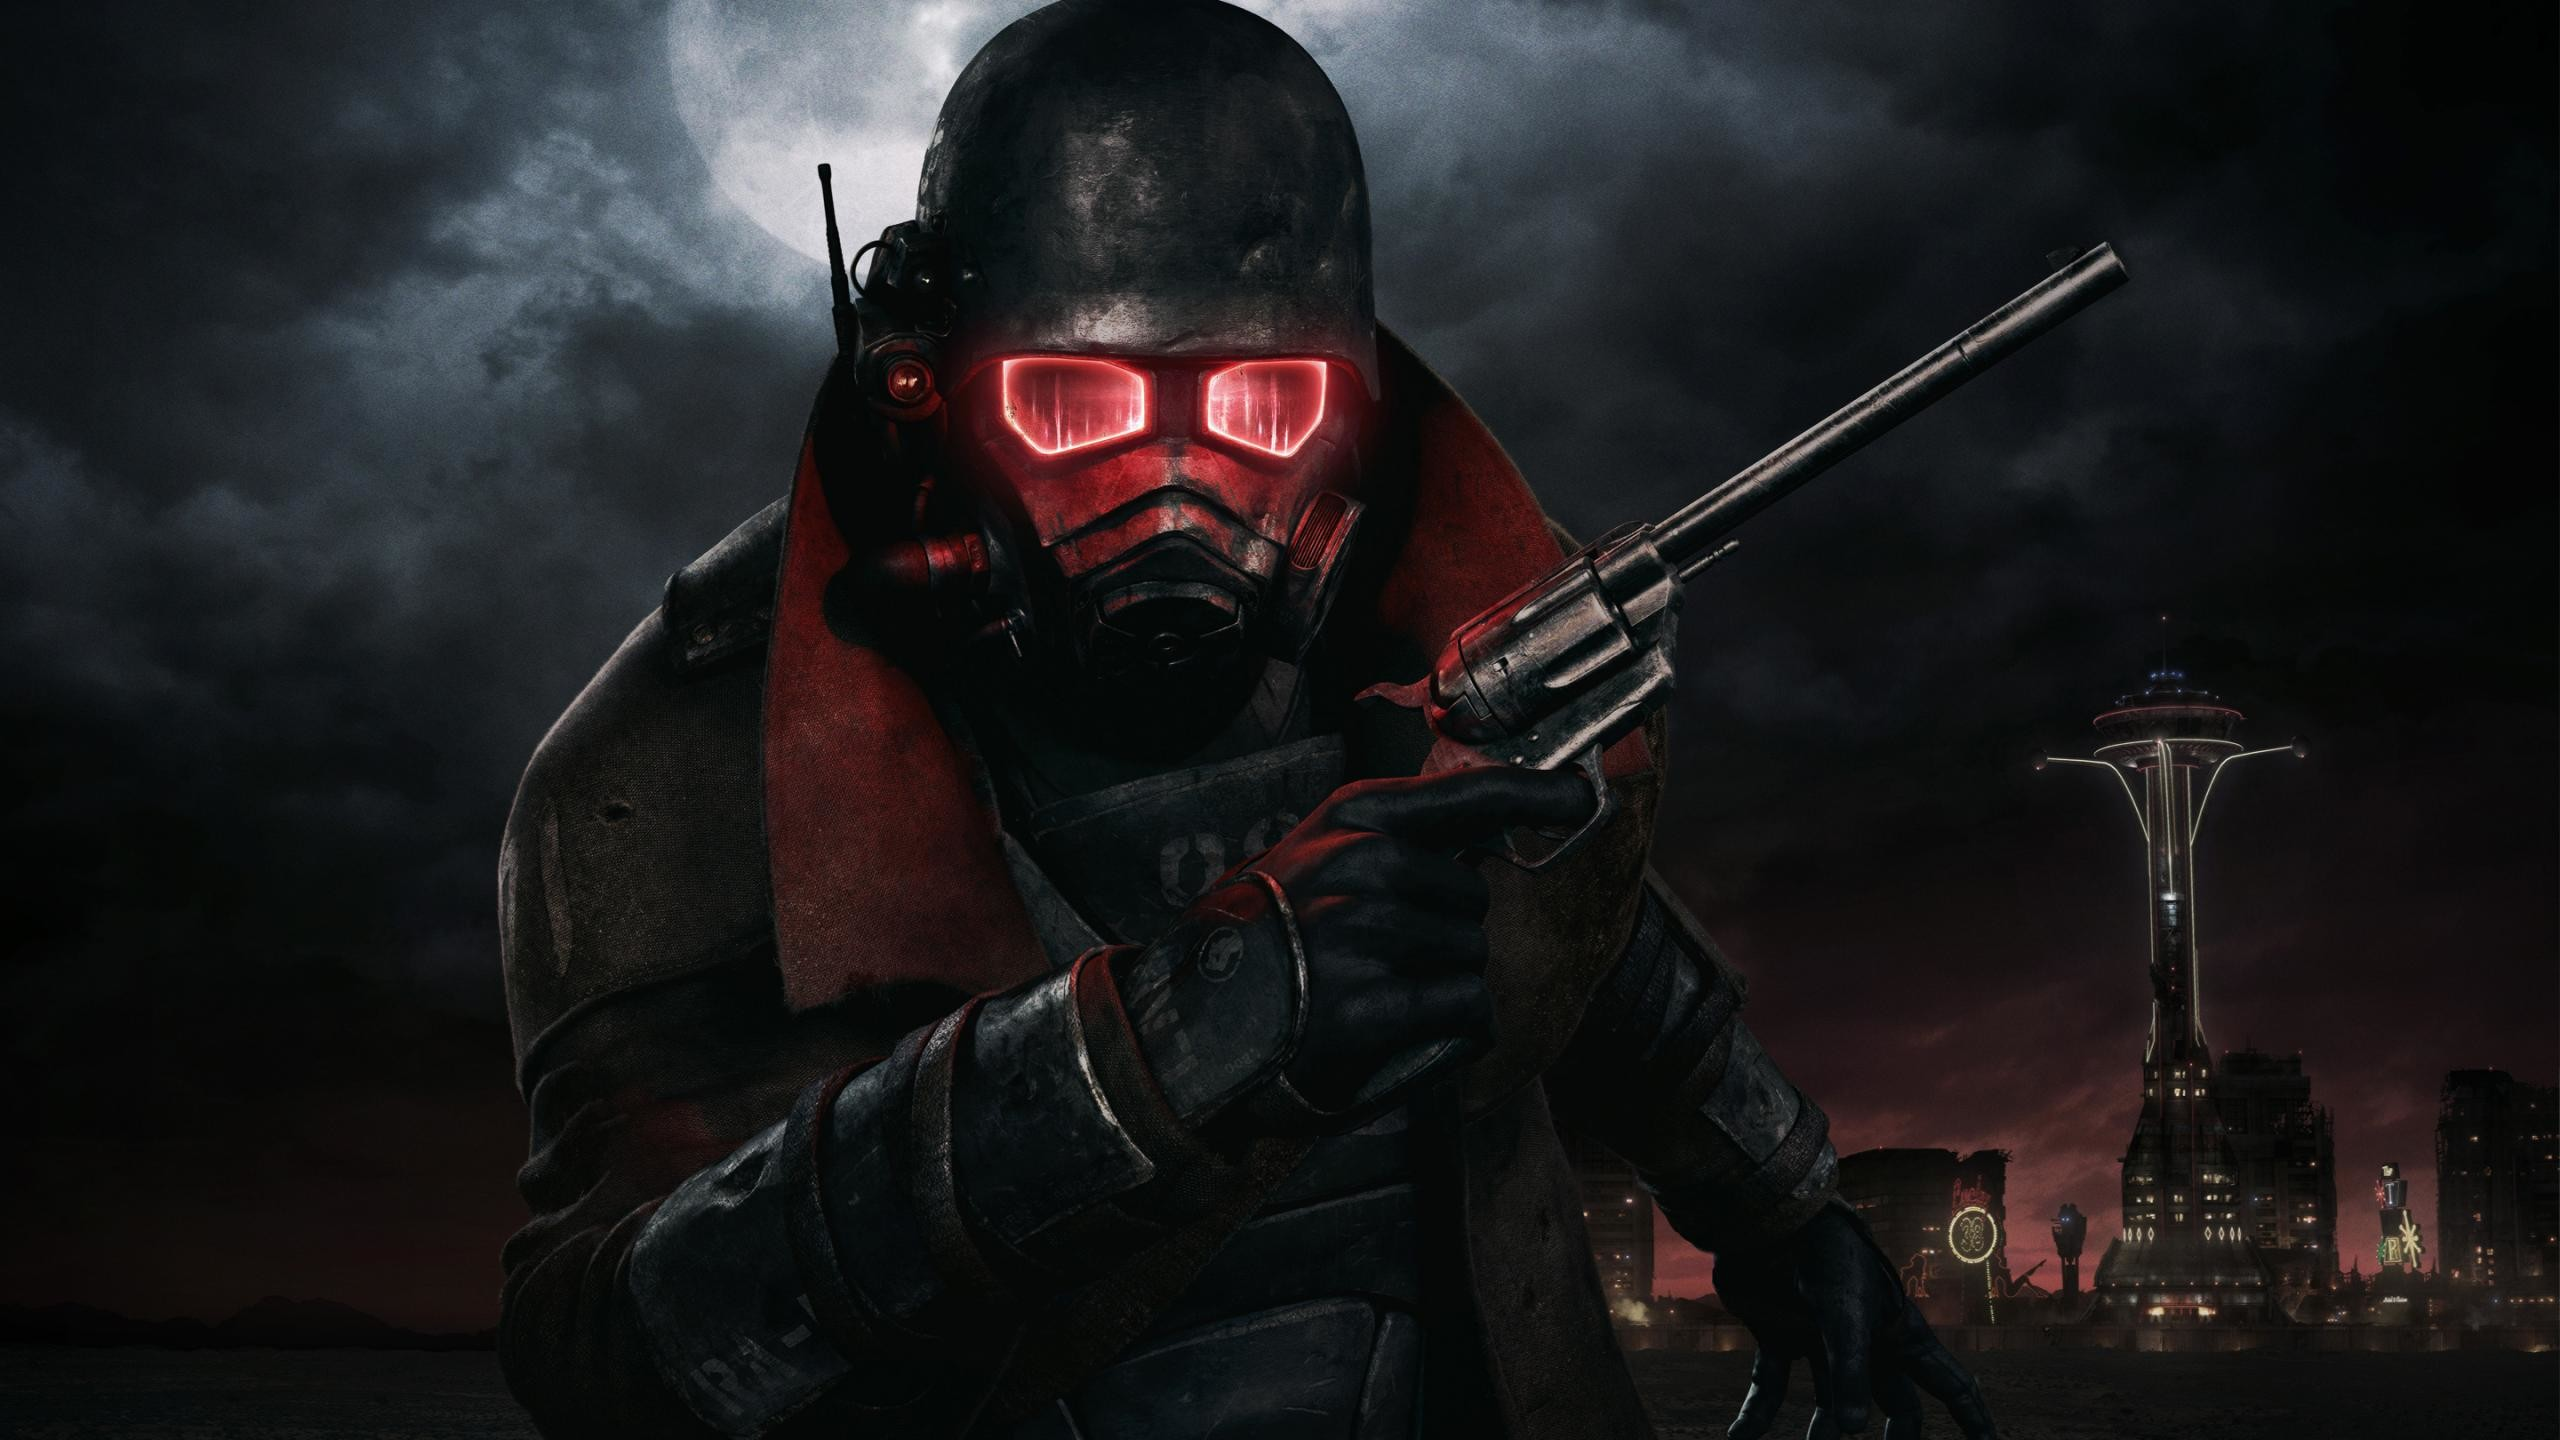 Fallout New Vegas Game Wallpaper size available for downloads